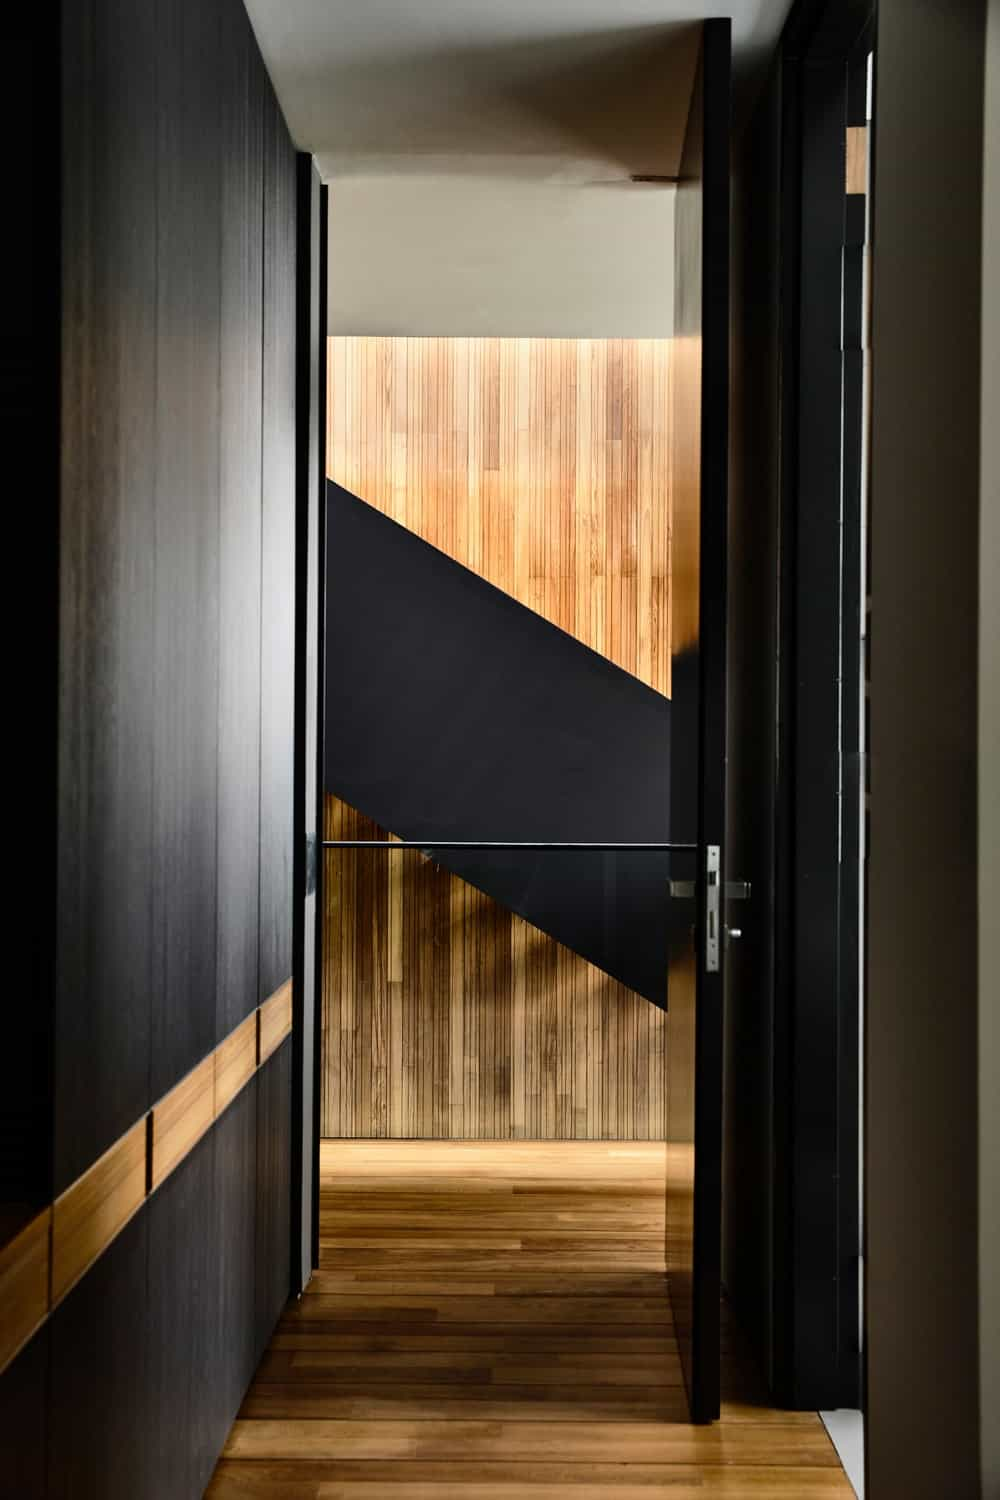 This is a look at the hallway and stairs from the vantage of inside one of the bedrooms.